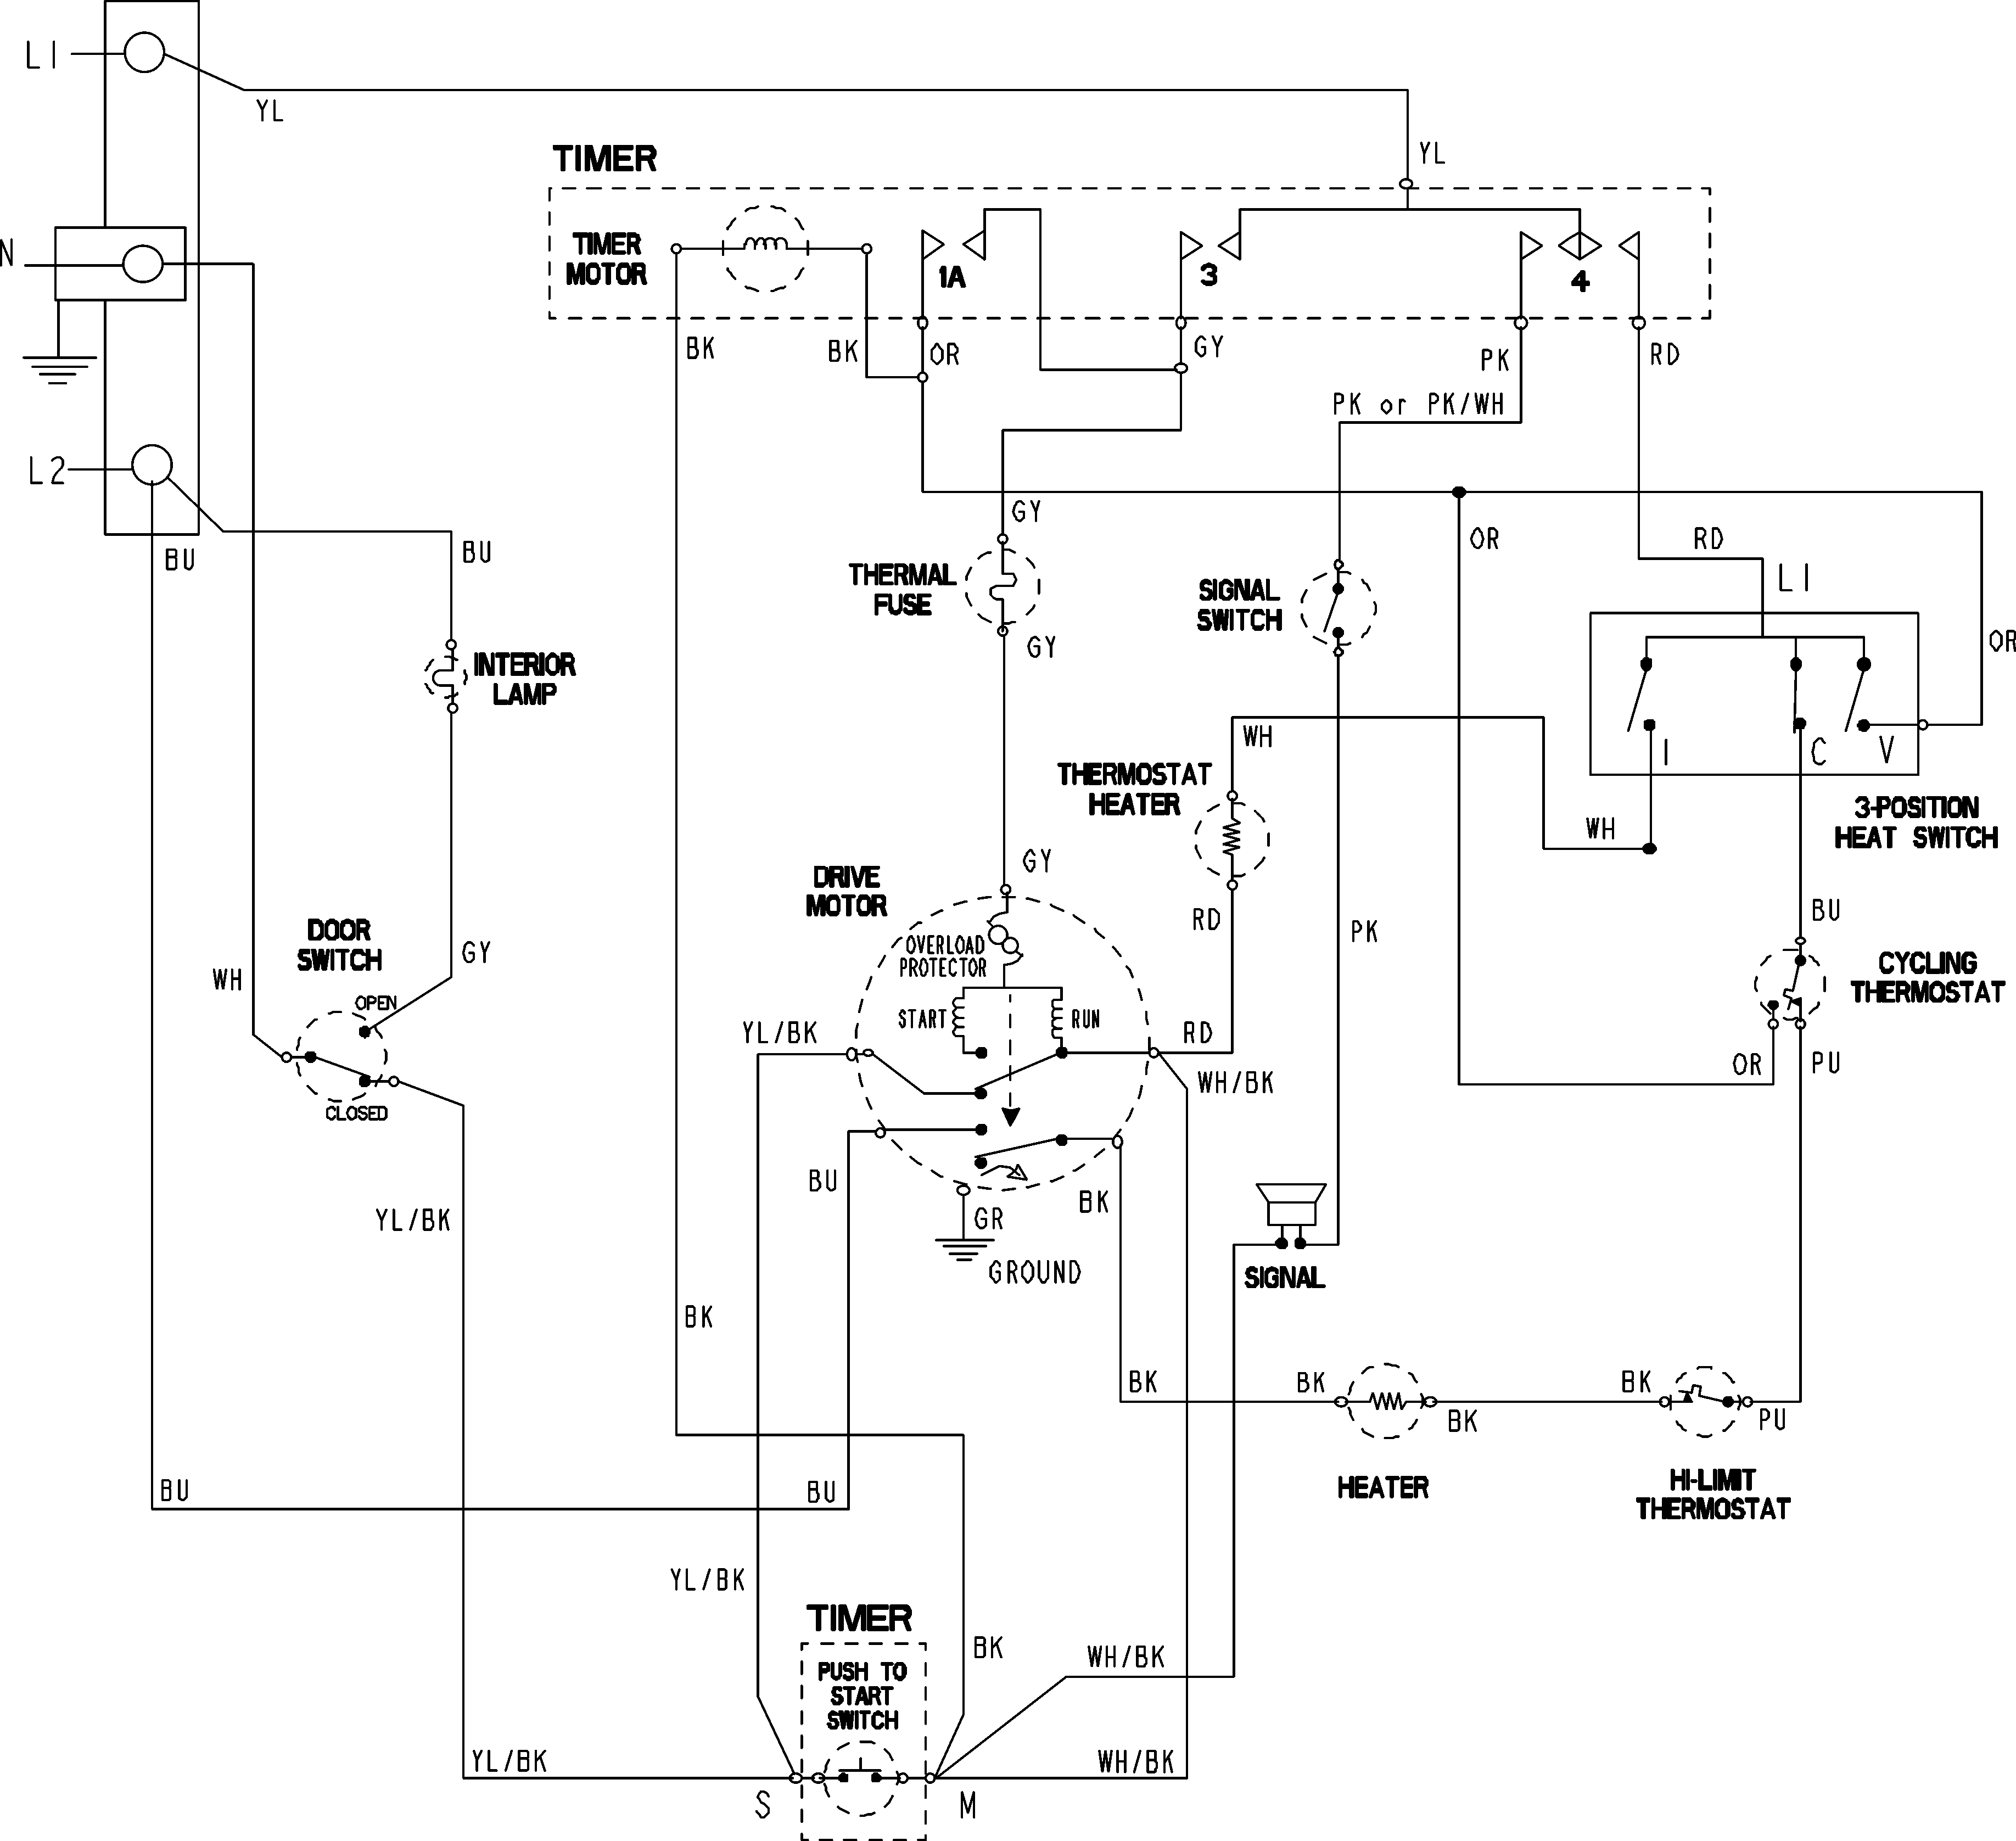 pigtail wire diagram for dryer [ 3672 x 3353 Pixel ]